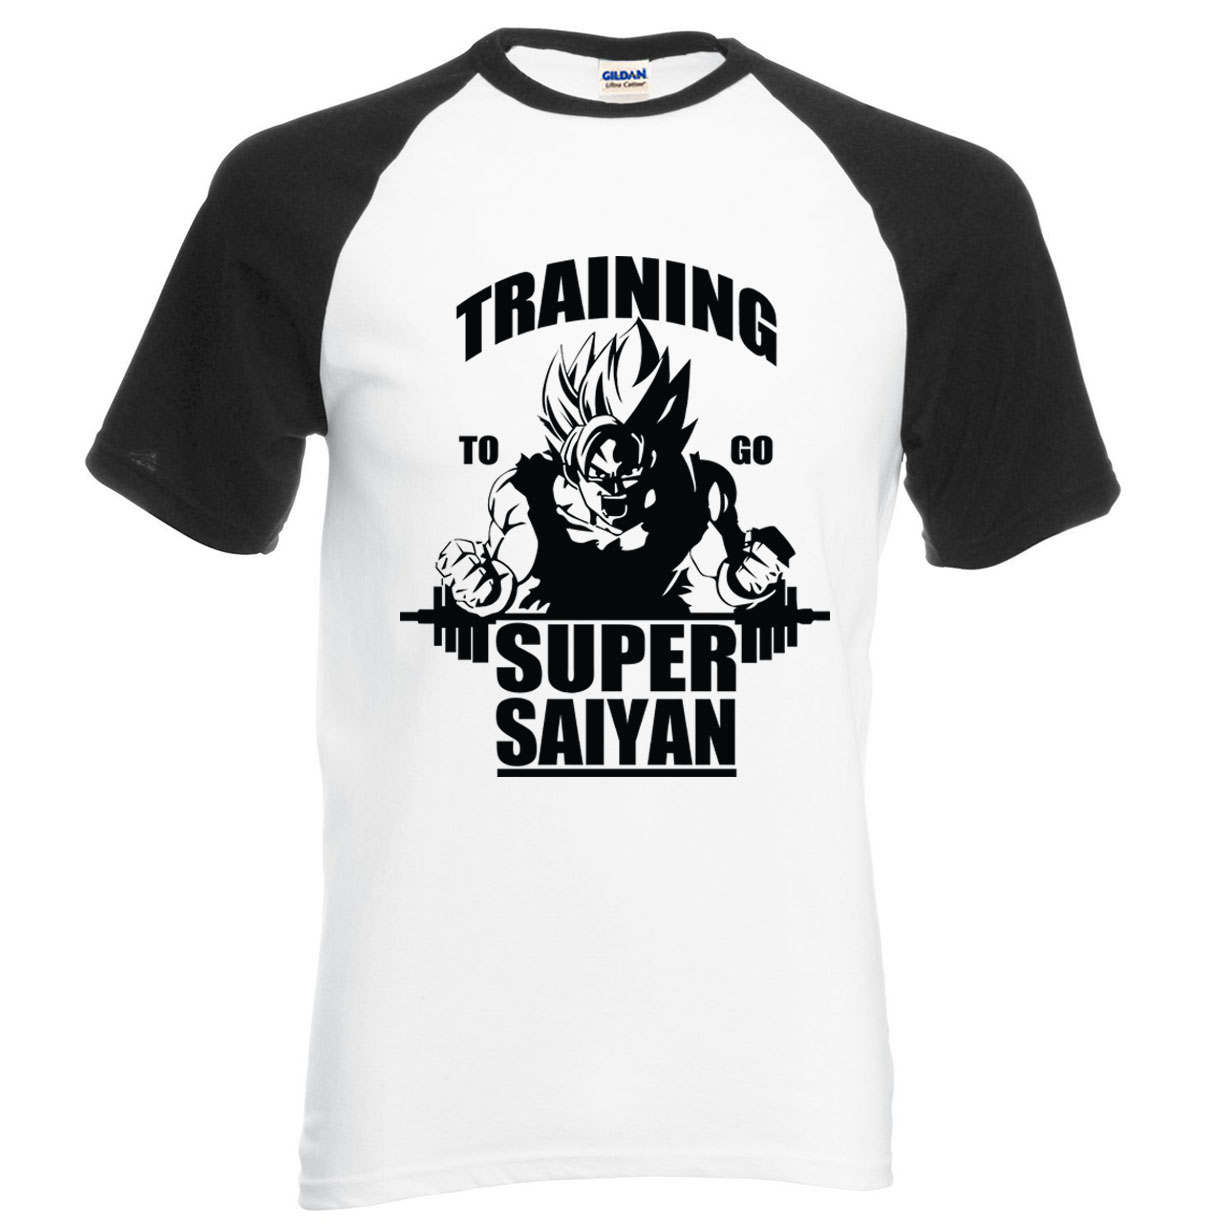 Trainning To Go Super Saiyan DBZ T-shirts